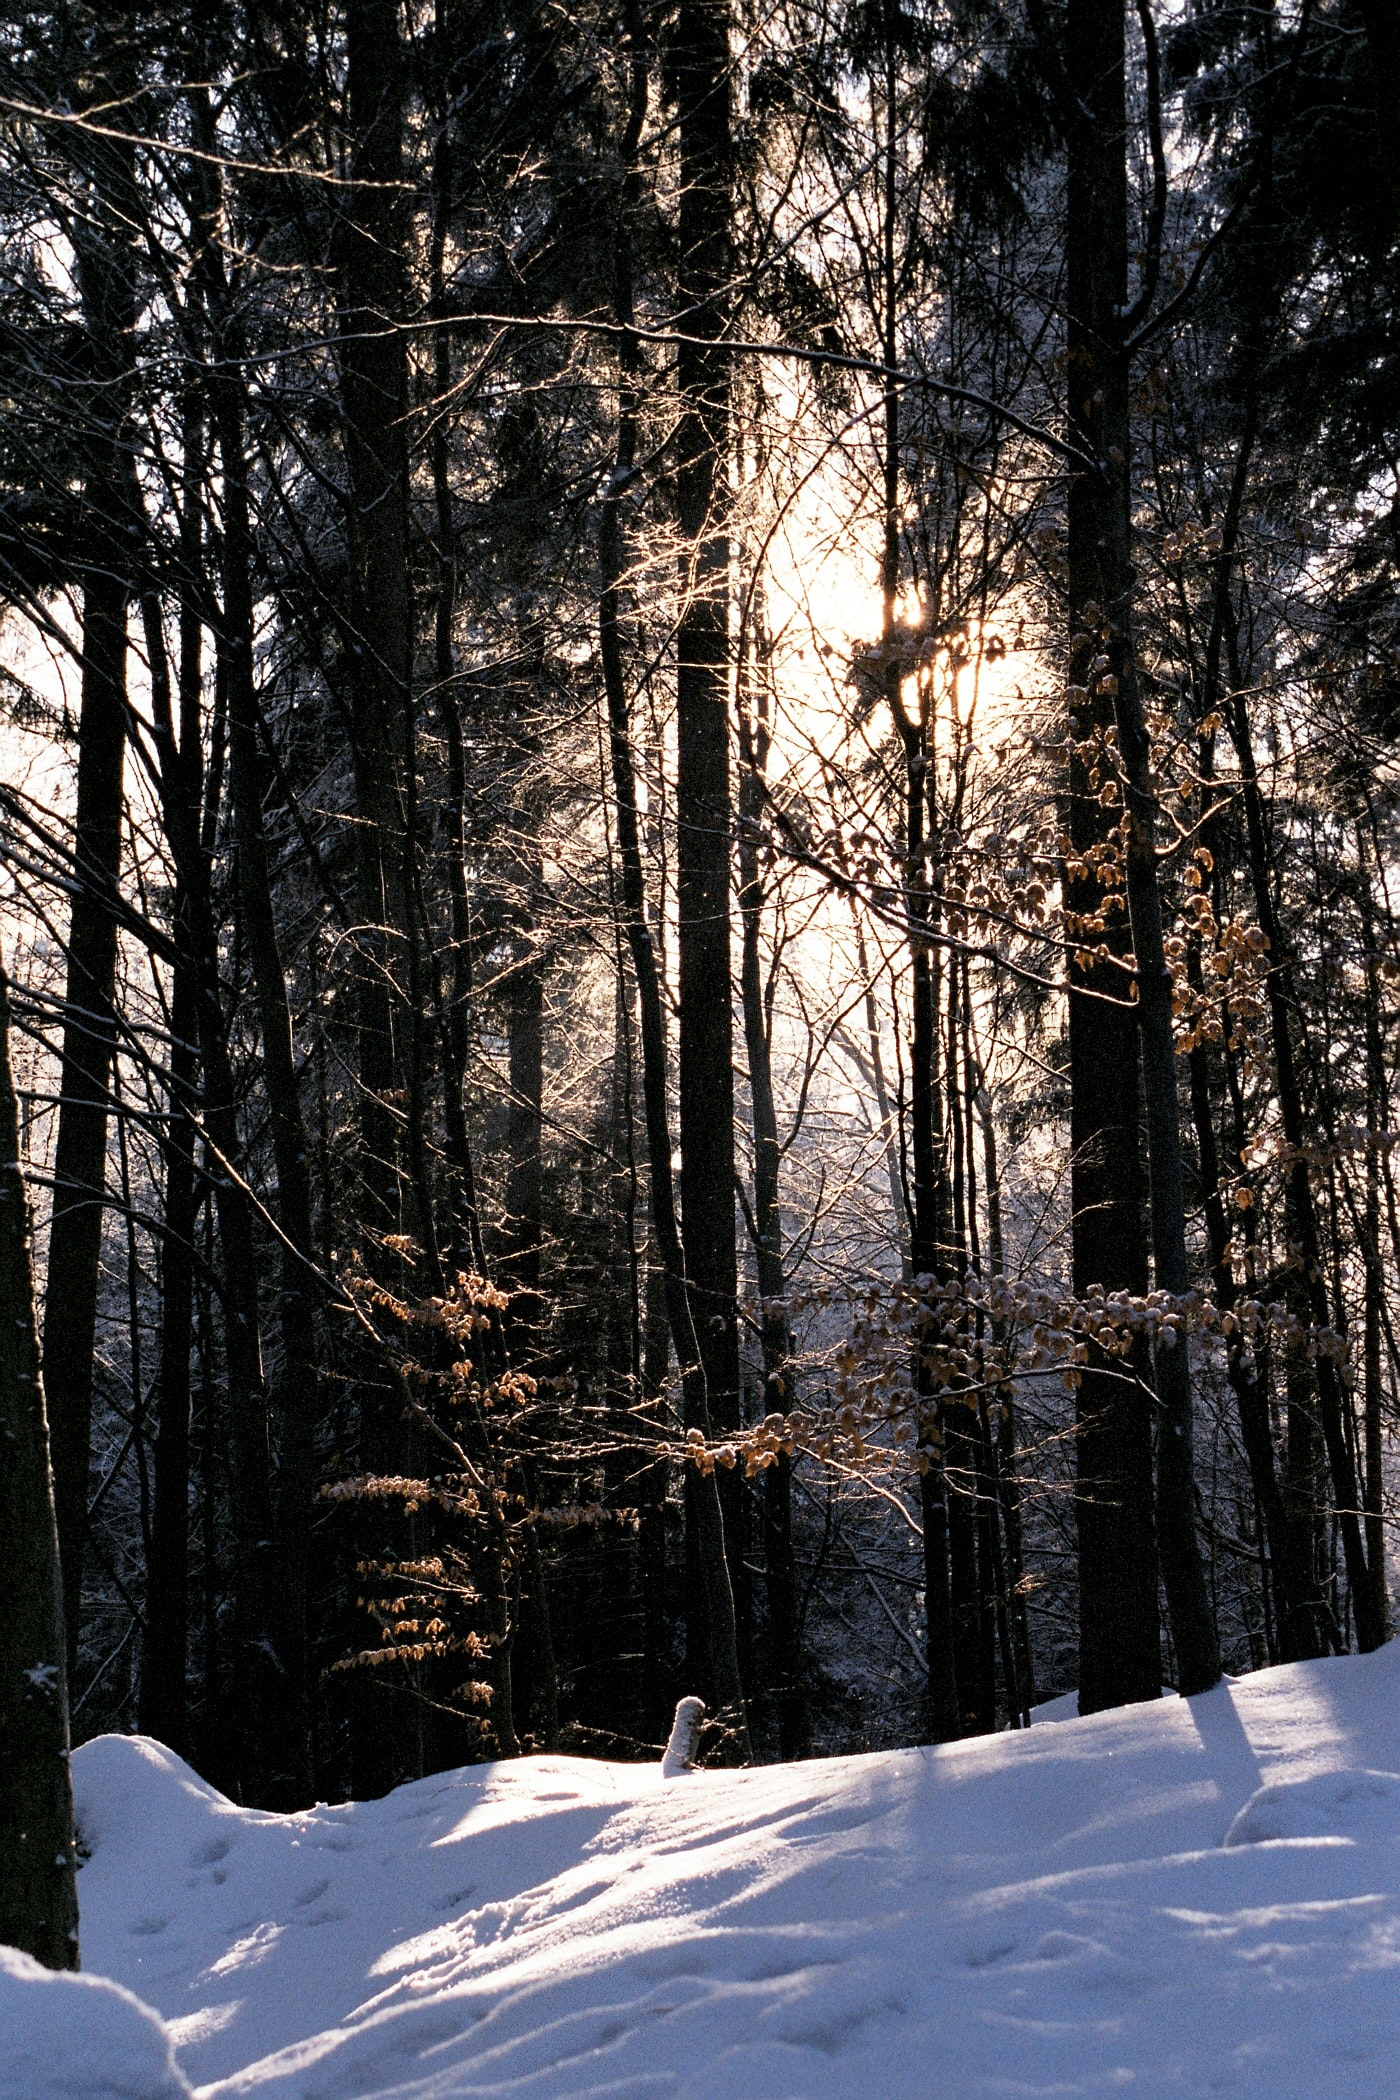 Winter scene with trees covered in snow and sunlight shining through the branches